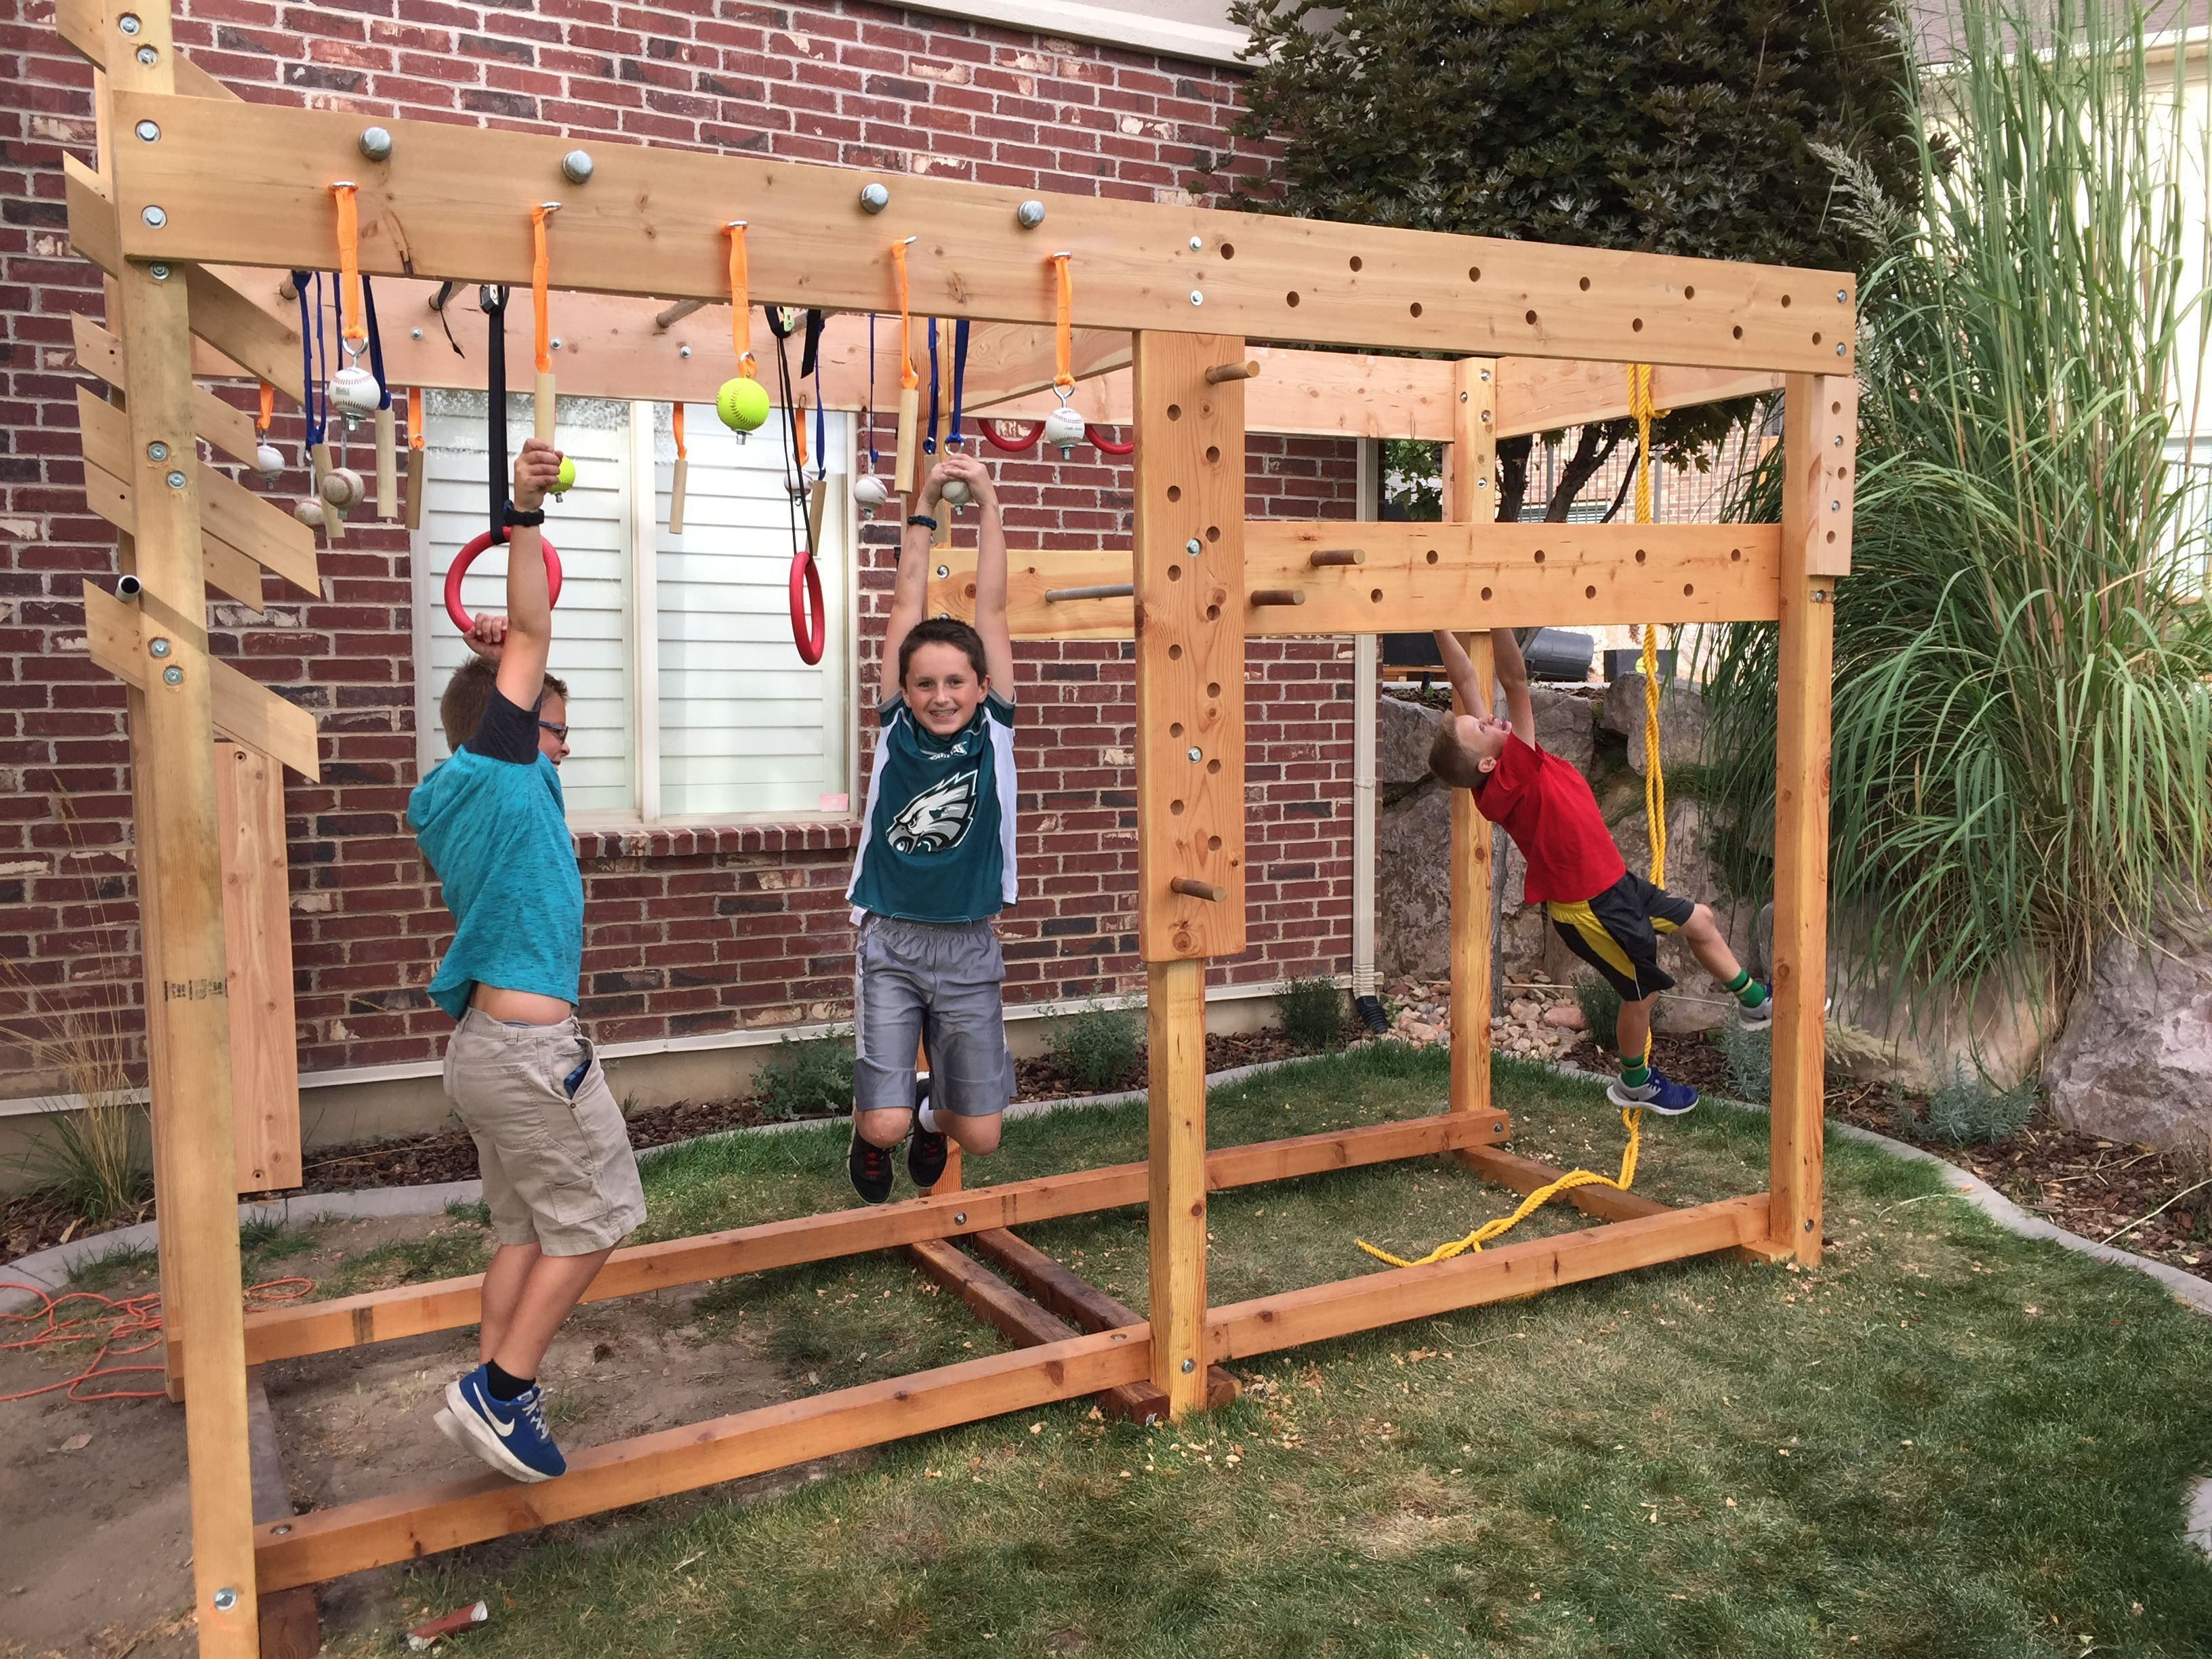 American Ninja Warrior Playground